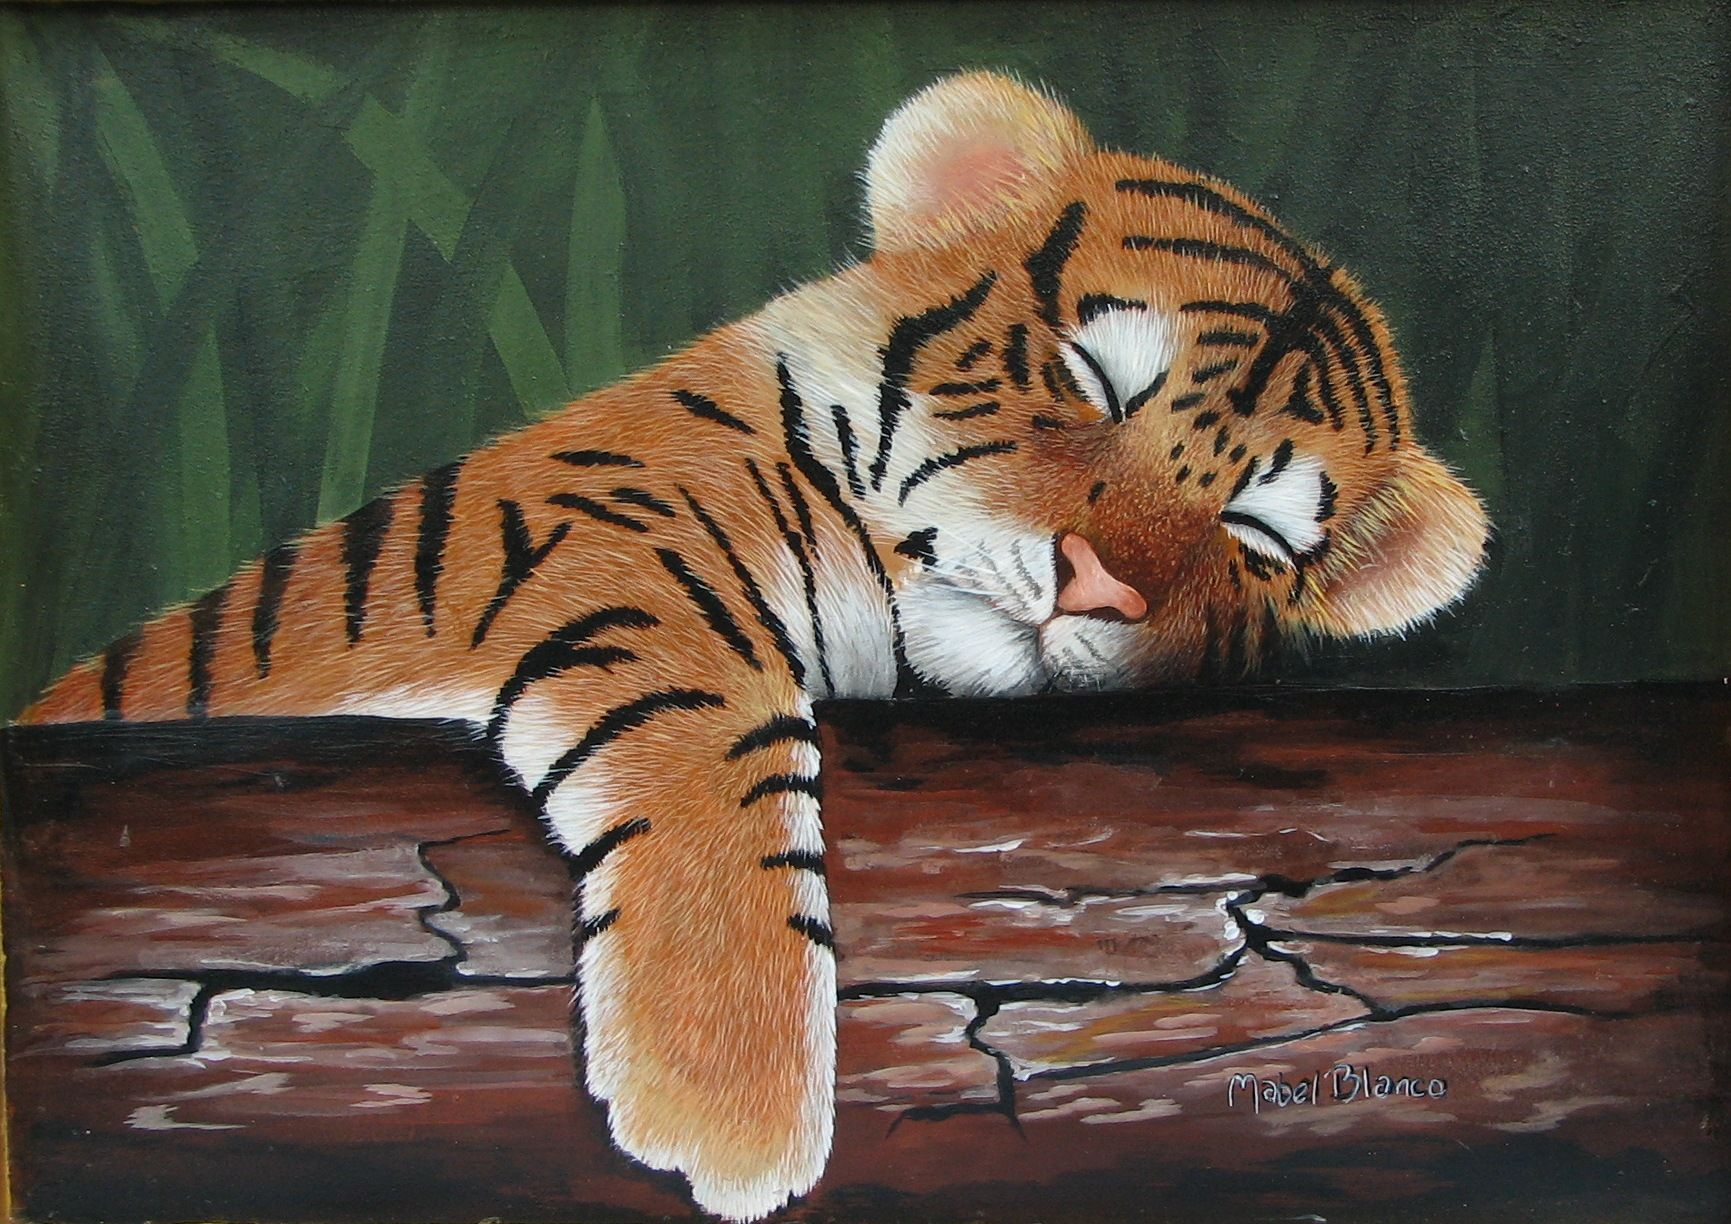 tigre bebe durmiendo | mis pinturas - my paintings ...